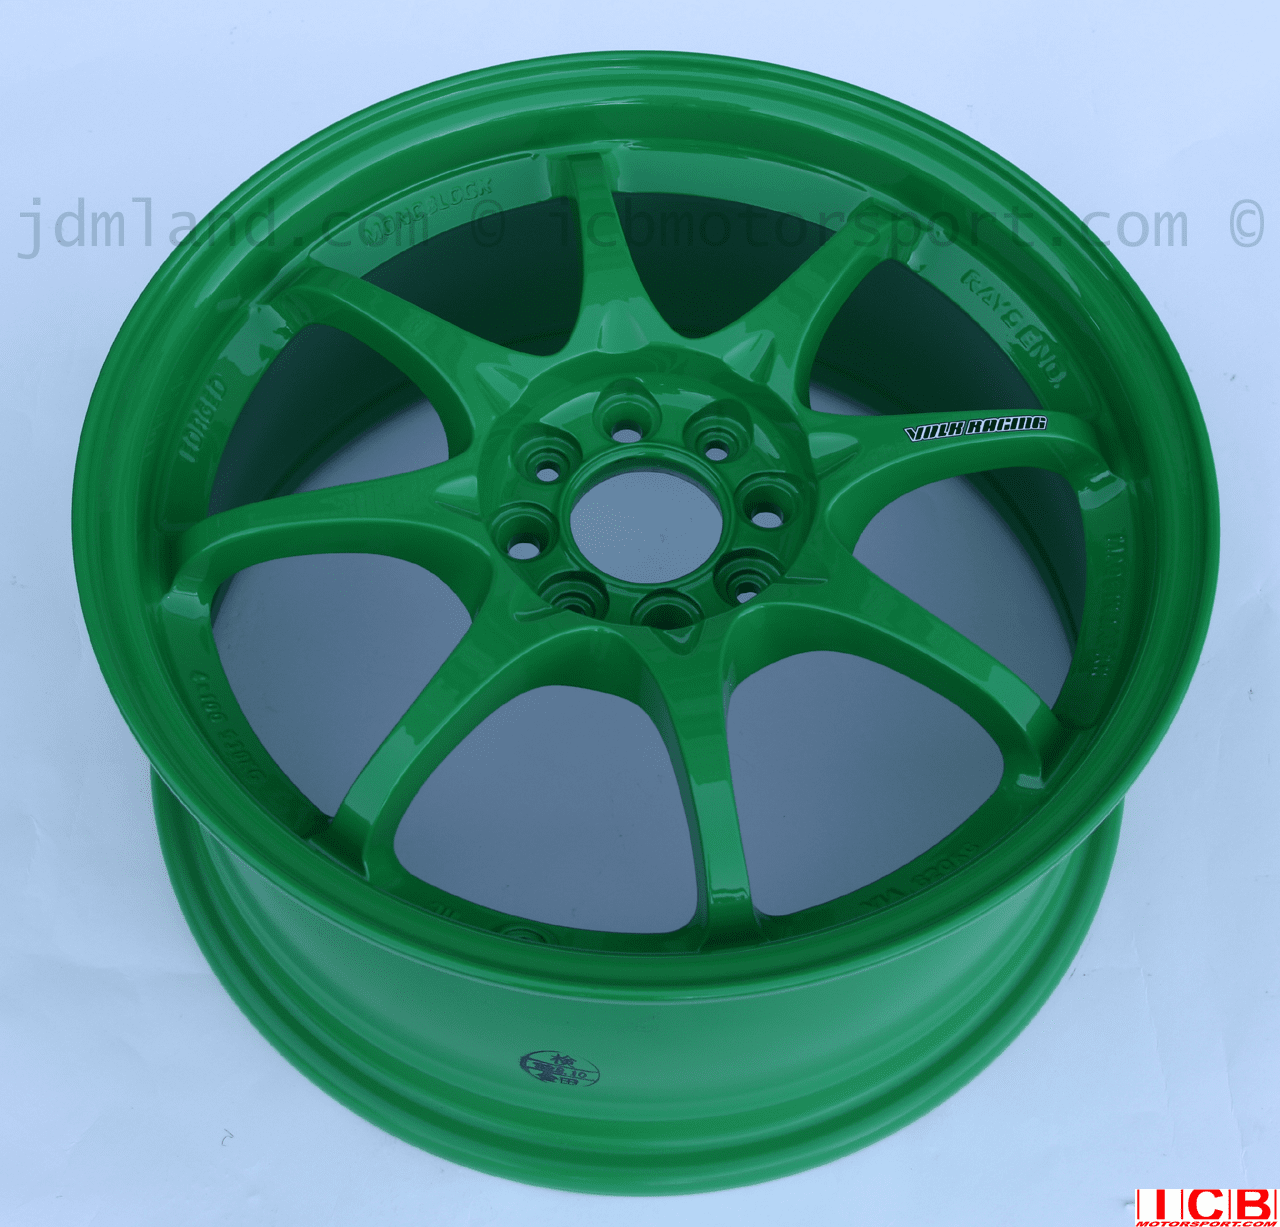 Rays Volk Racing CE28N Wheels 16X7 4X100 +42 Offset Takata Green Sold Out